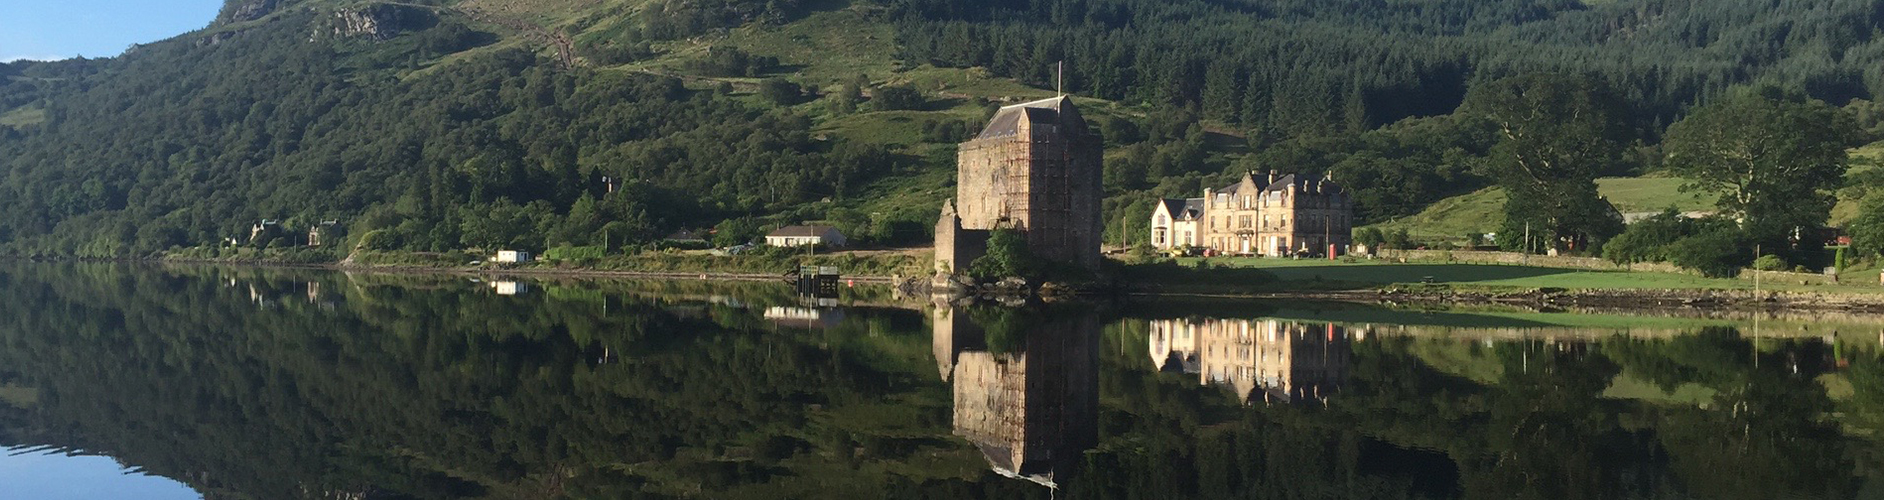 Special Offers|Cruise Scotland|Small Group Holiday|Walking Holiday\Holiday|Hebrides Cruises|The Majestic Line